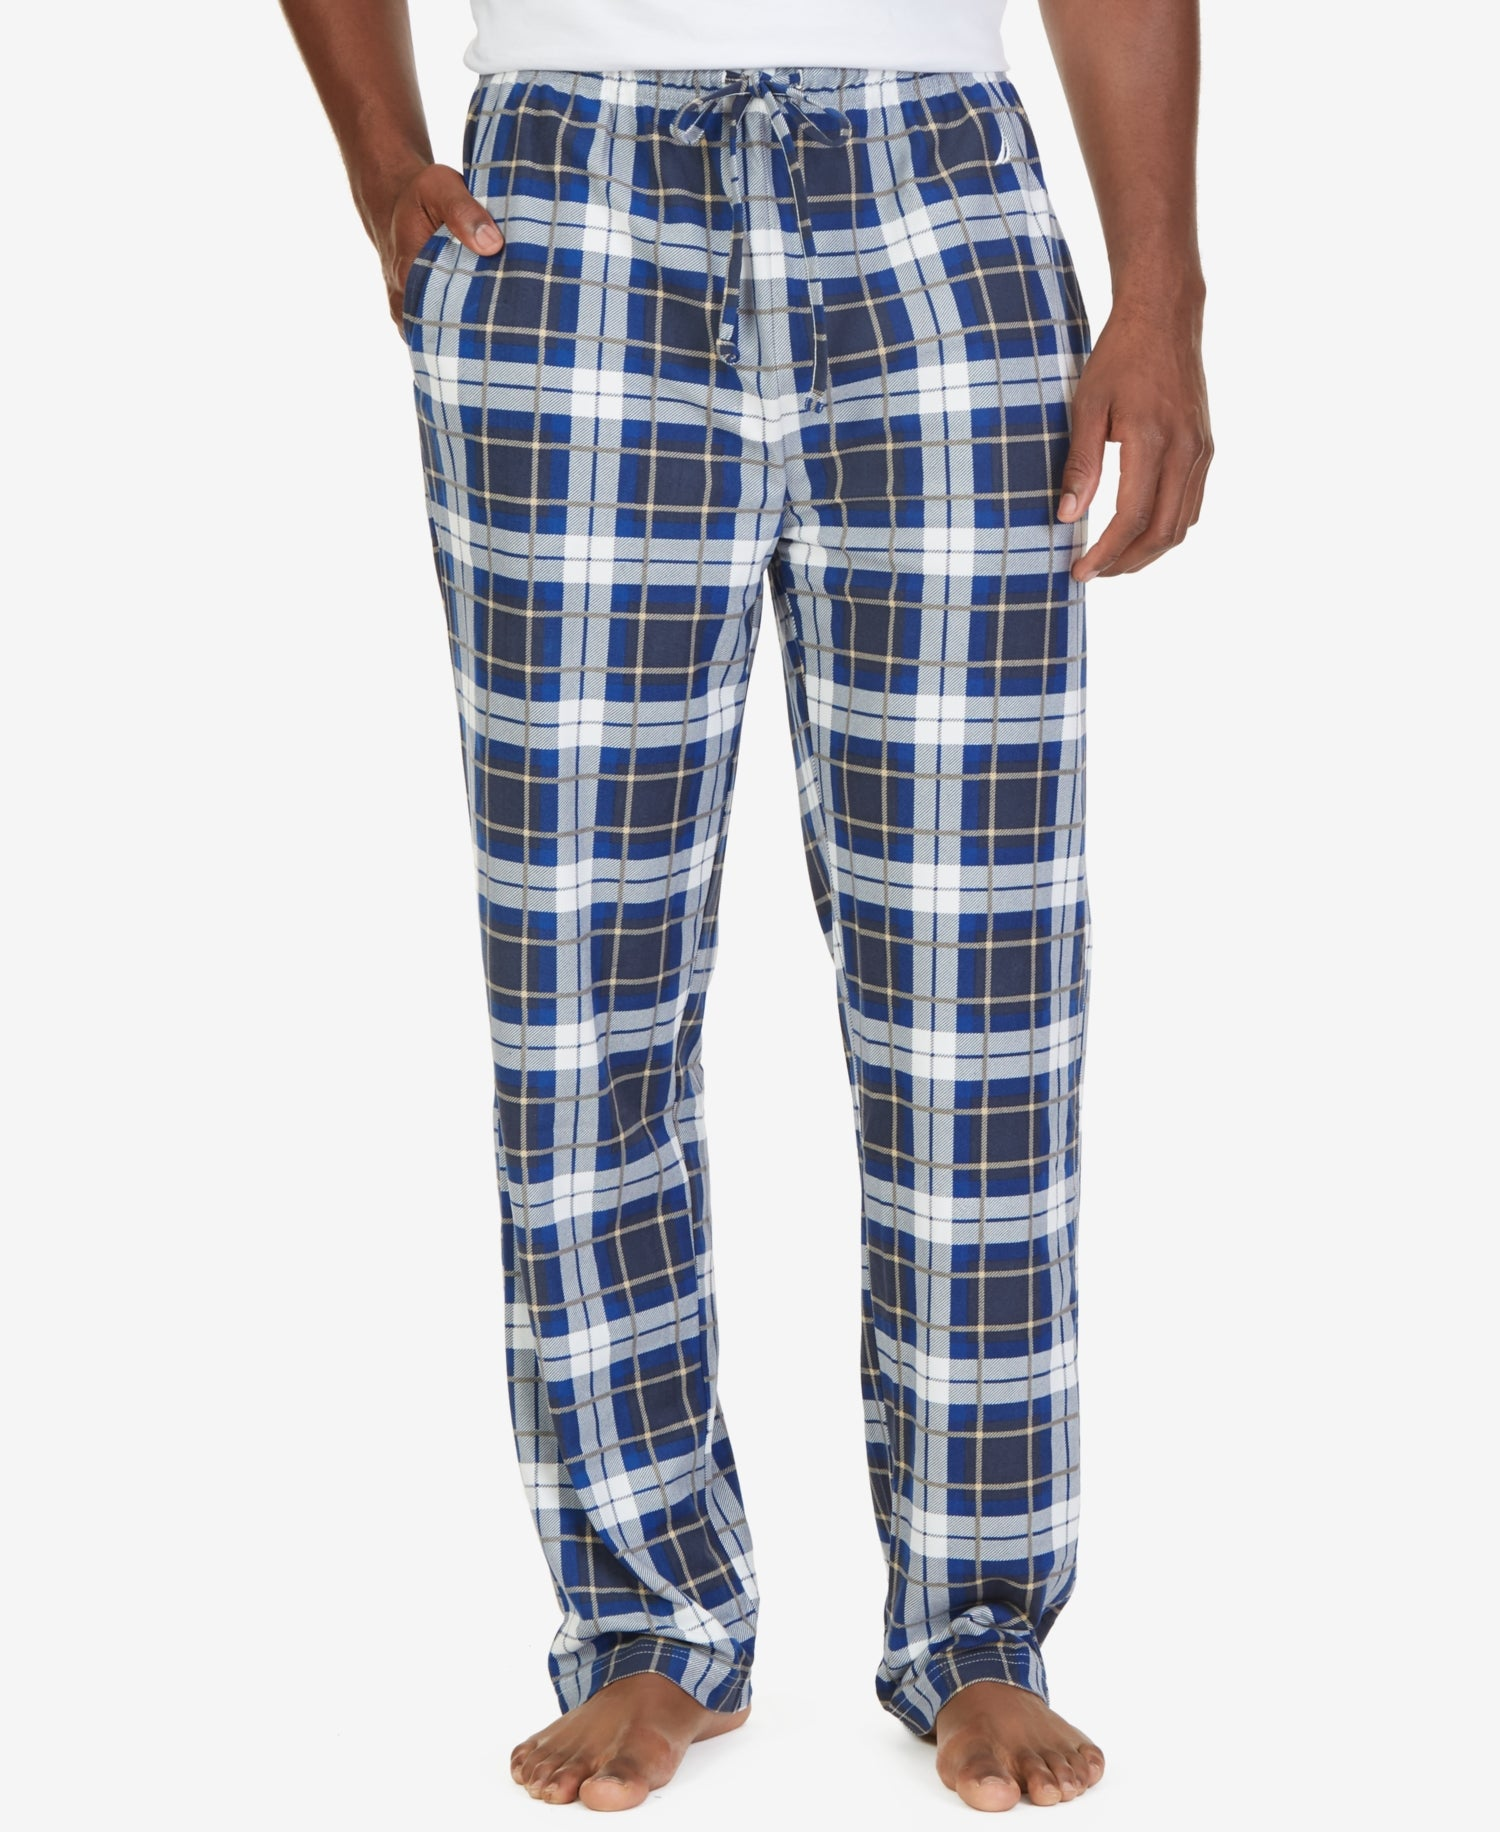 Nautica Men s Plaid Sueded Fleece Pajama Pant – Retail Trunk e2c95c94f